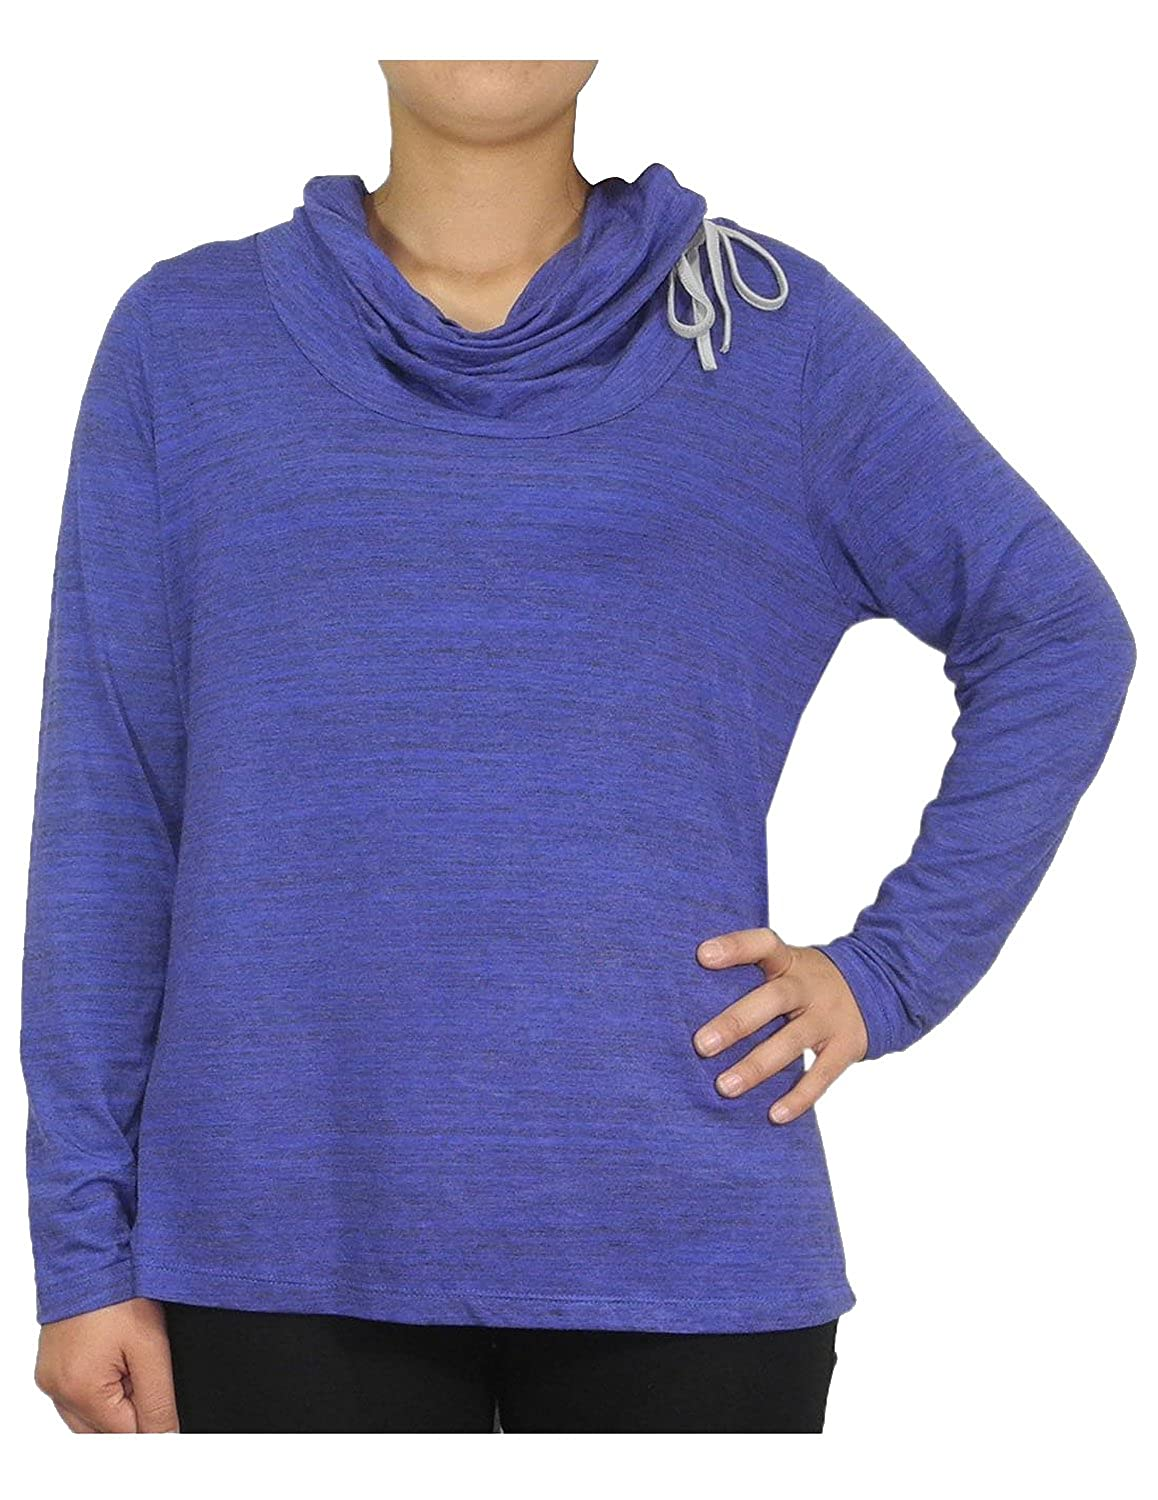 PLUS SIZE Womens Balance Collection (by Marika) Cowl Neck Yoga Shirt